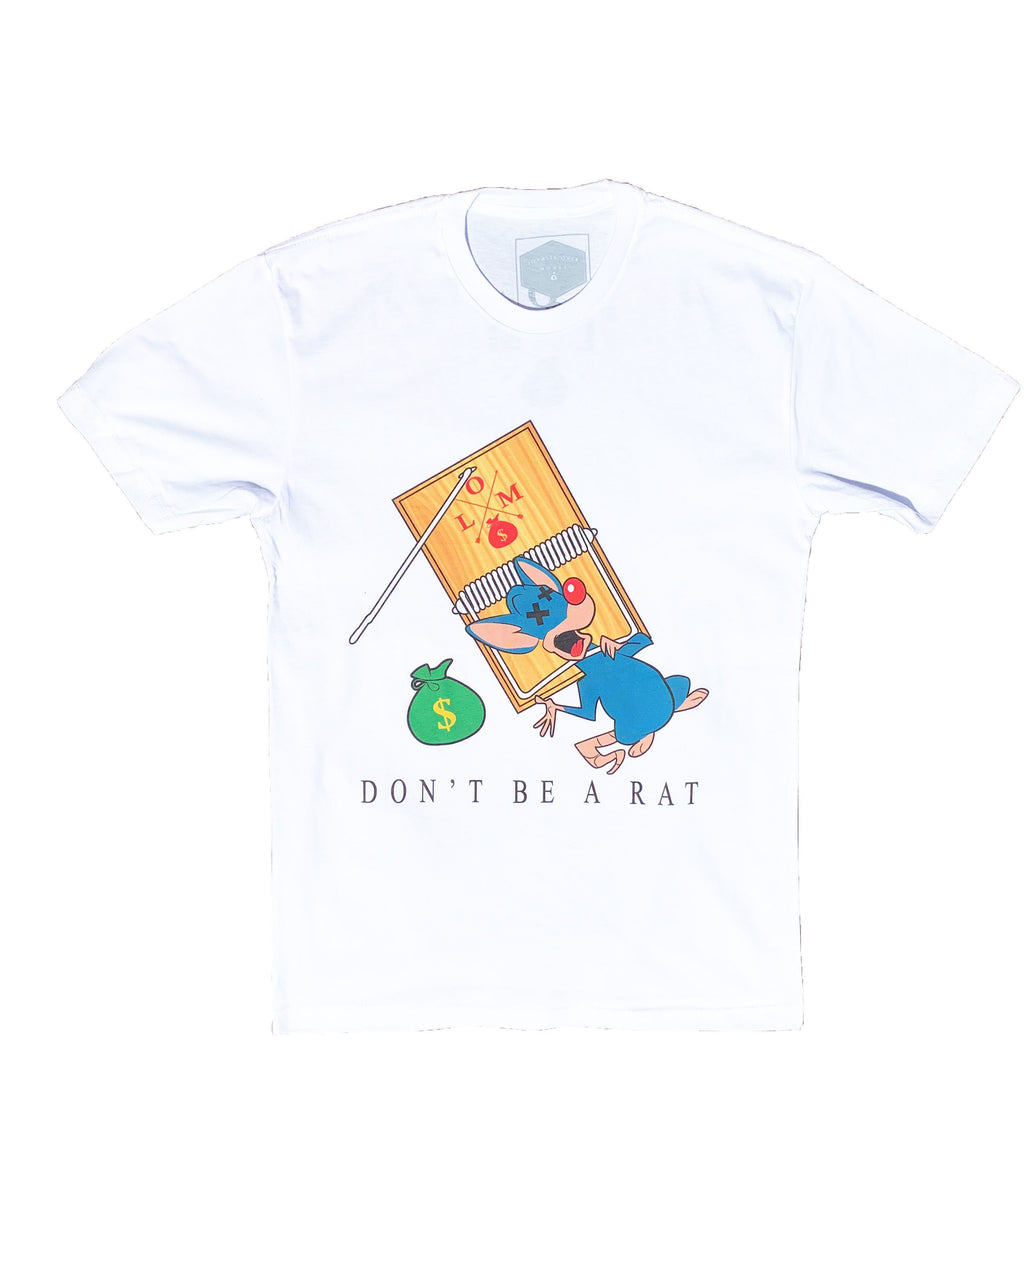 DONT BE A RAT T SHIRTS